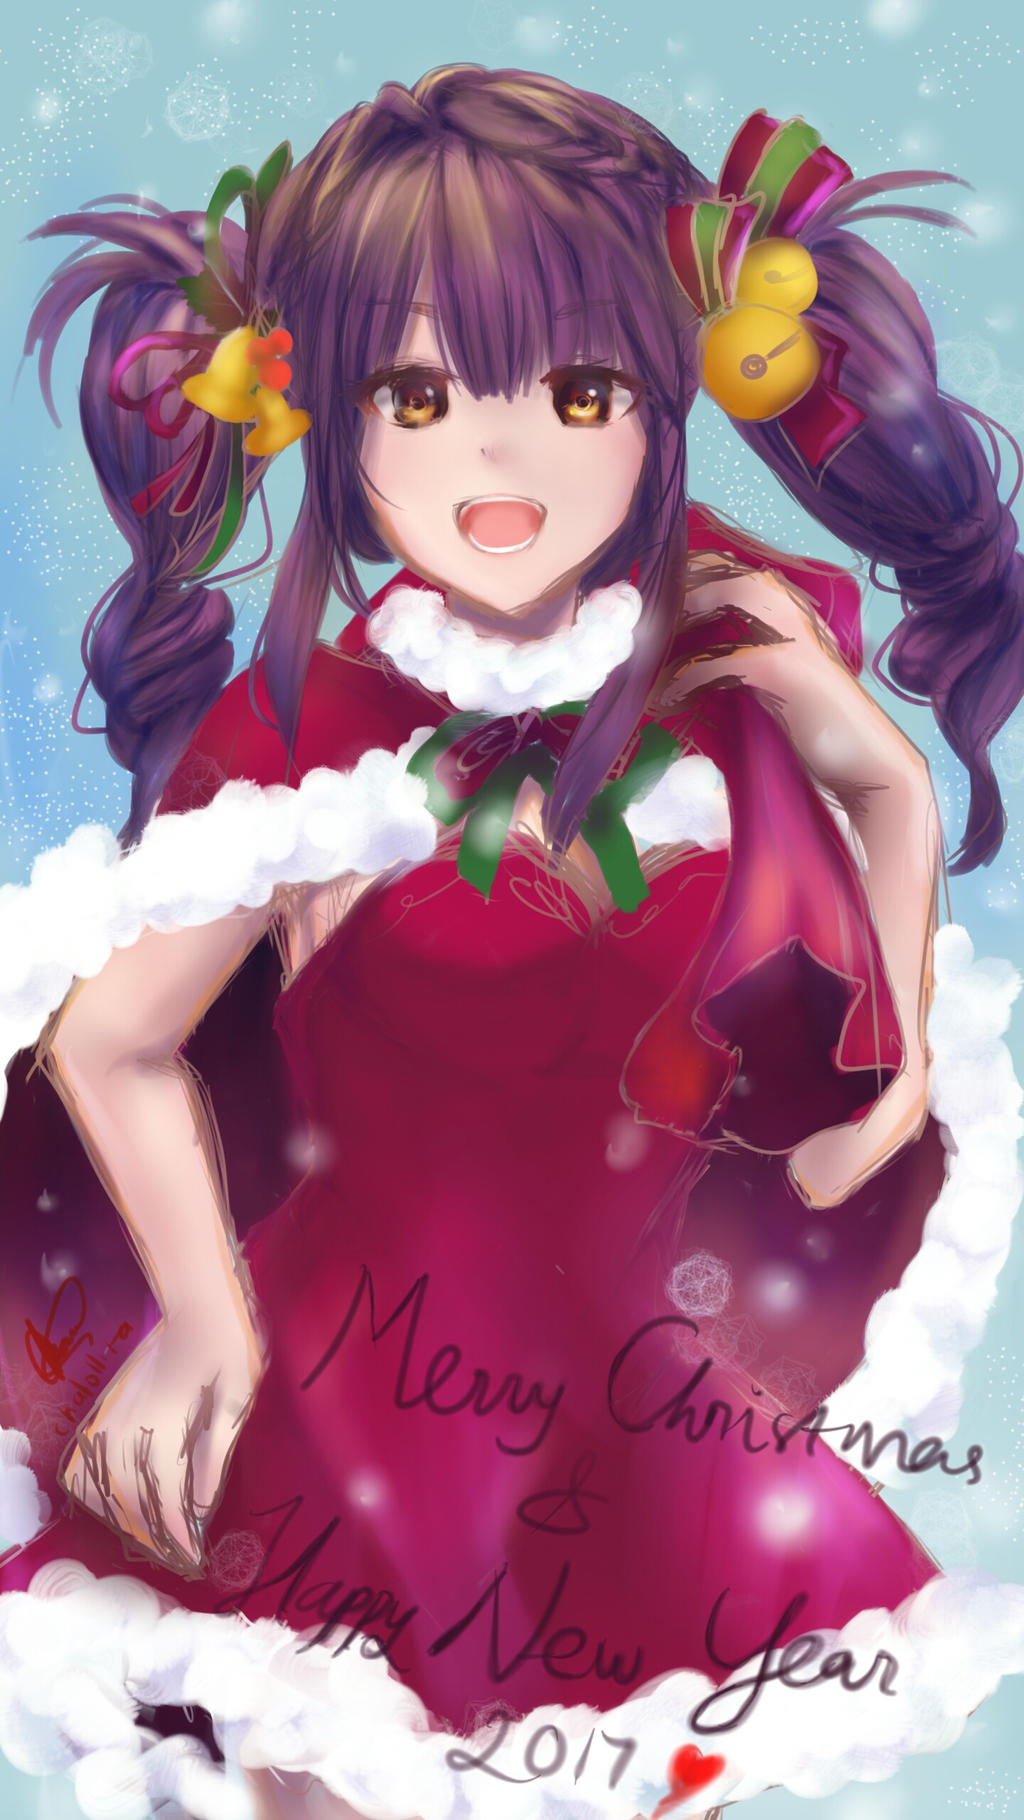 Merry Christmas-Happy New Year 2017 by chalollita